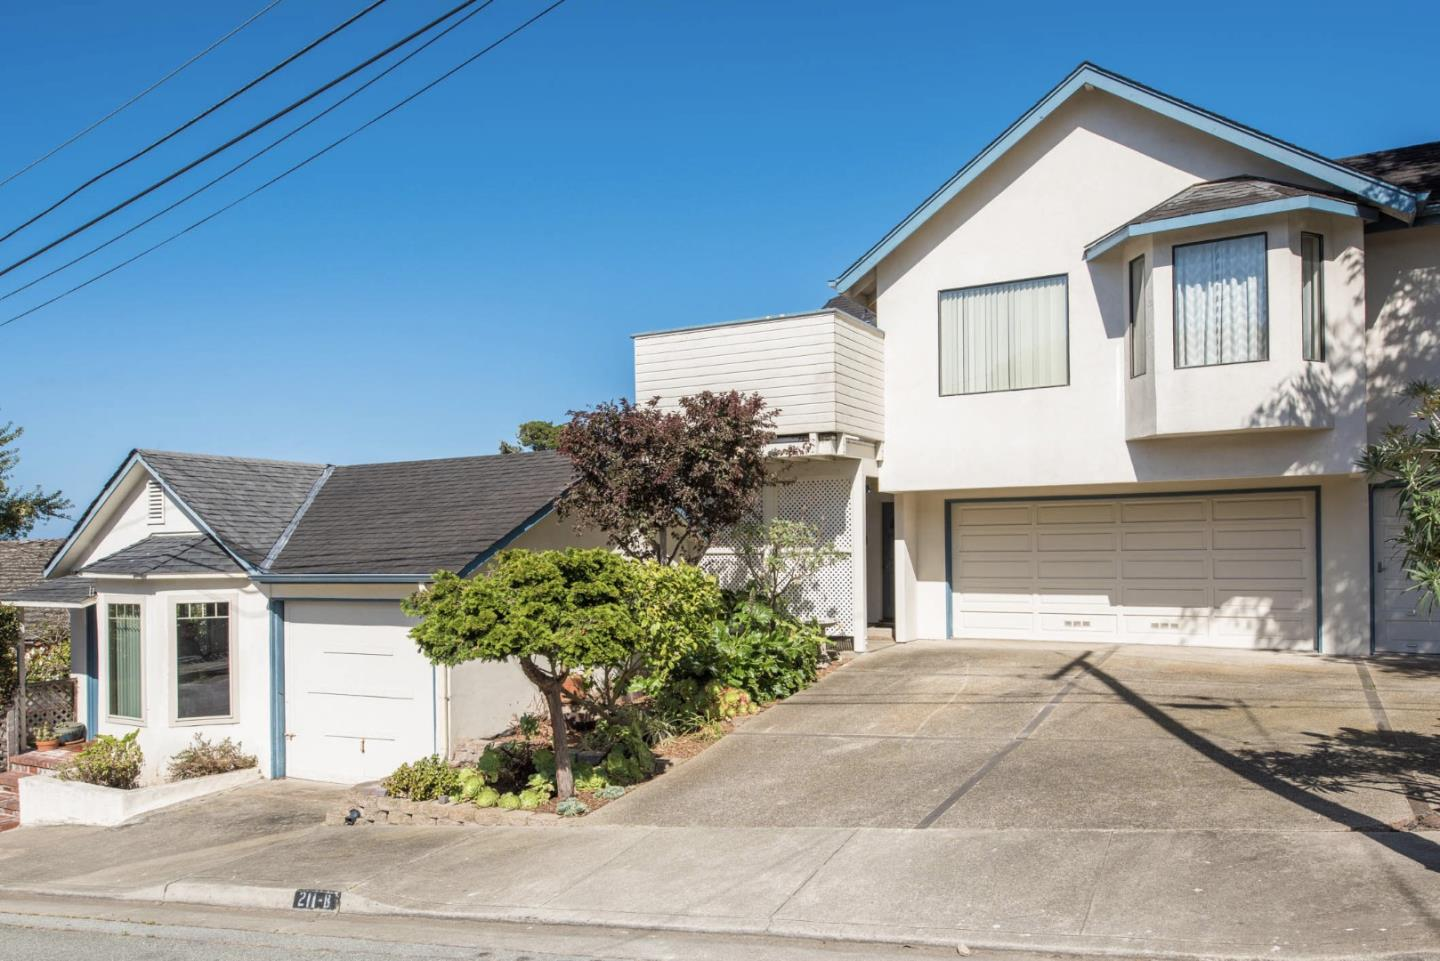 Multi-Family Home for Sale at 211 10th Street Pacific Grove, California 93950 United States